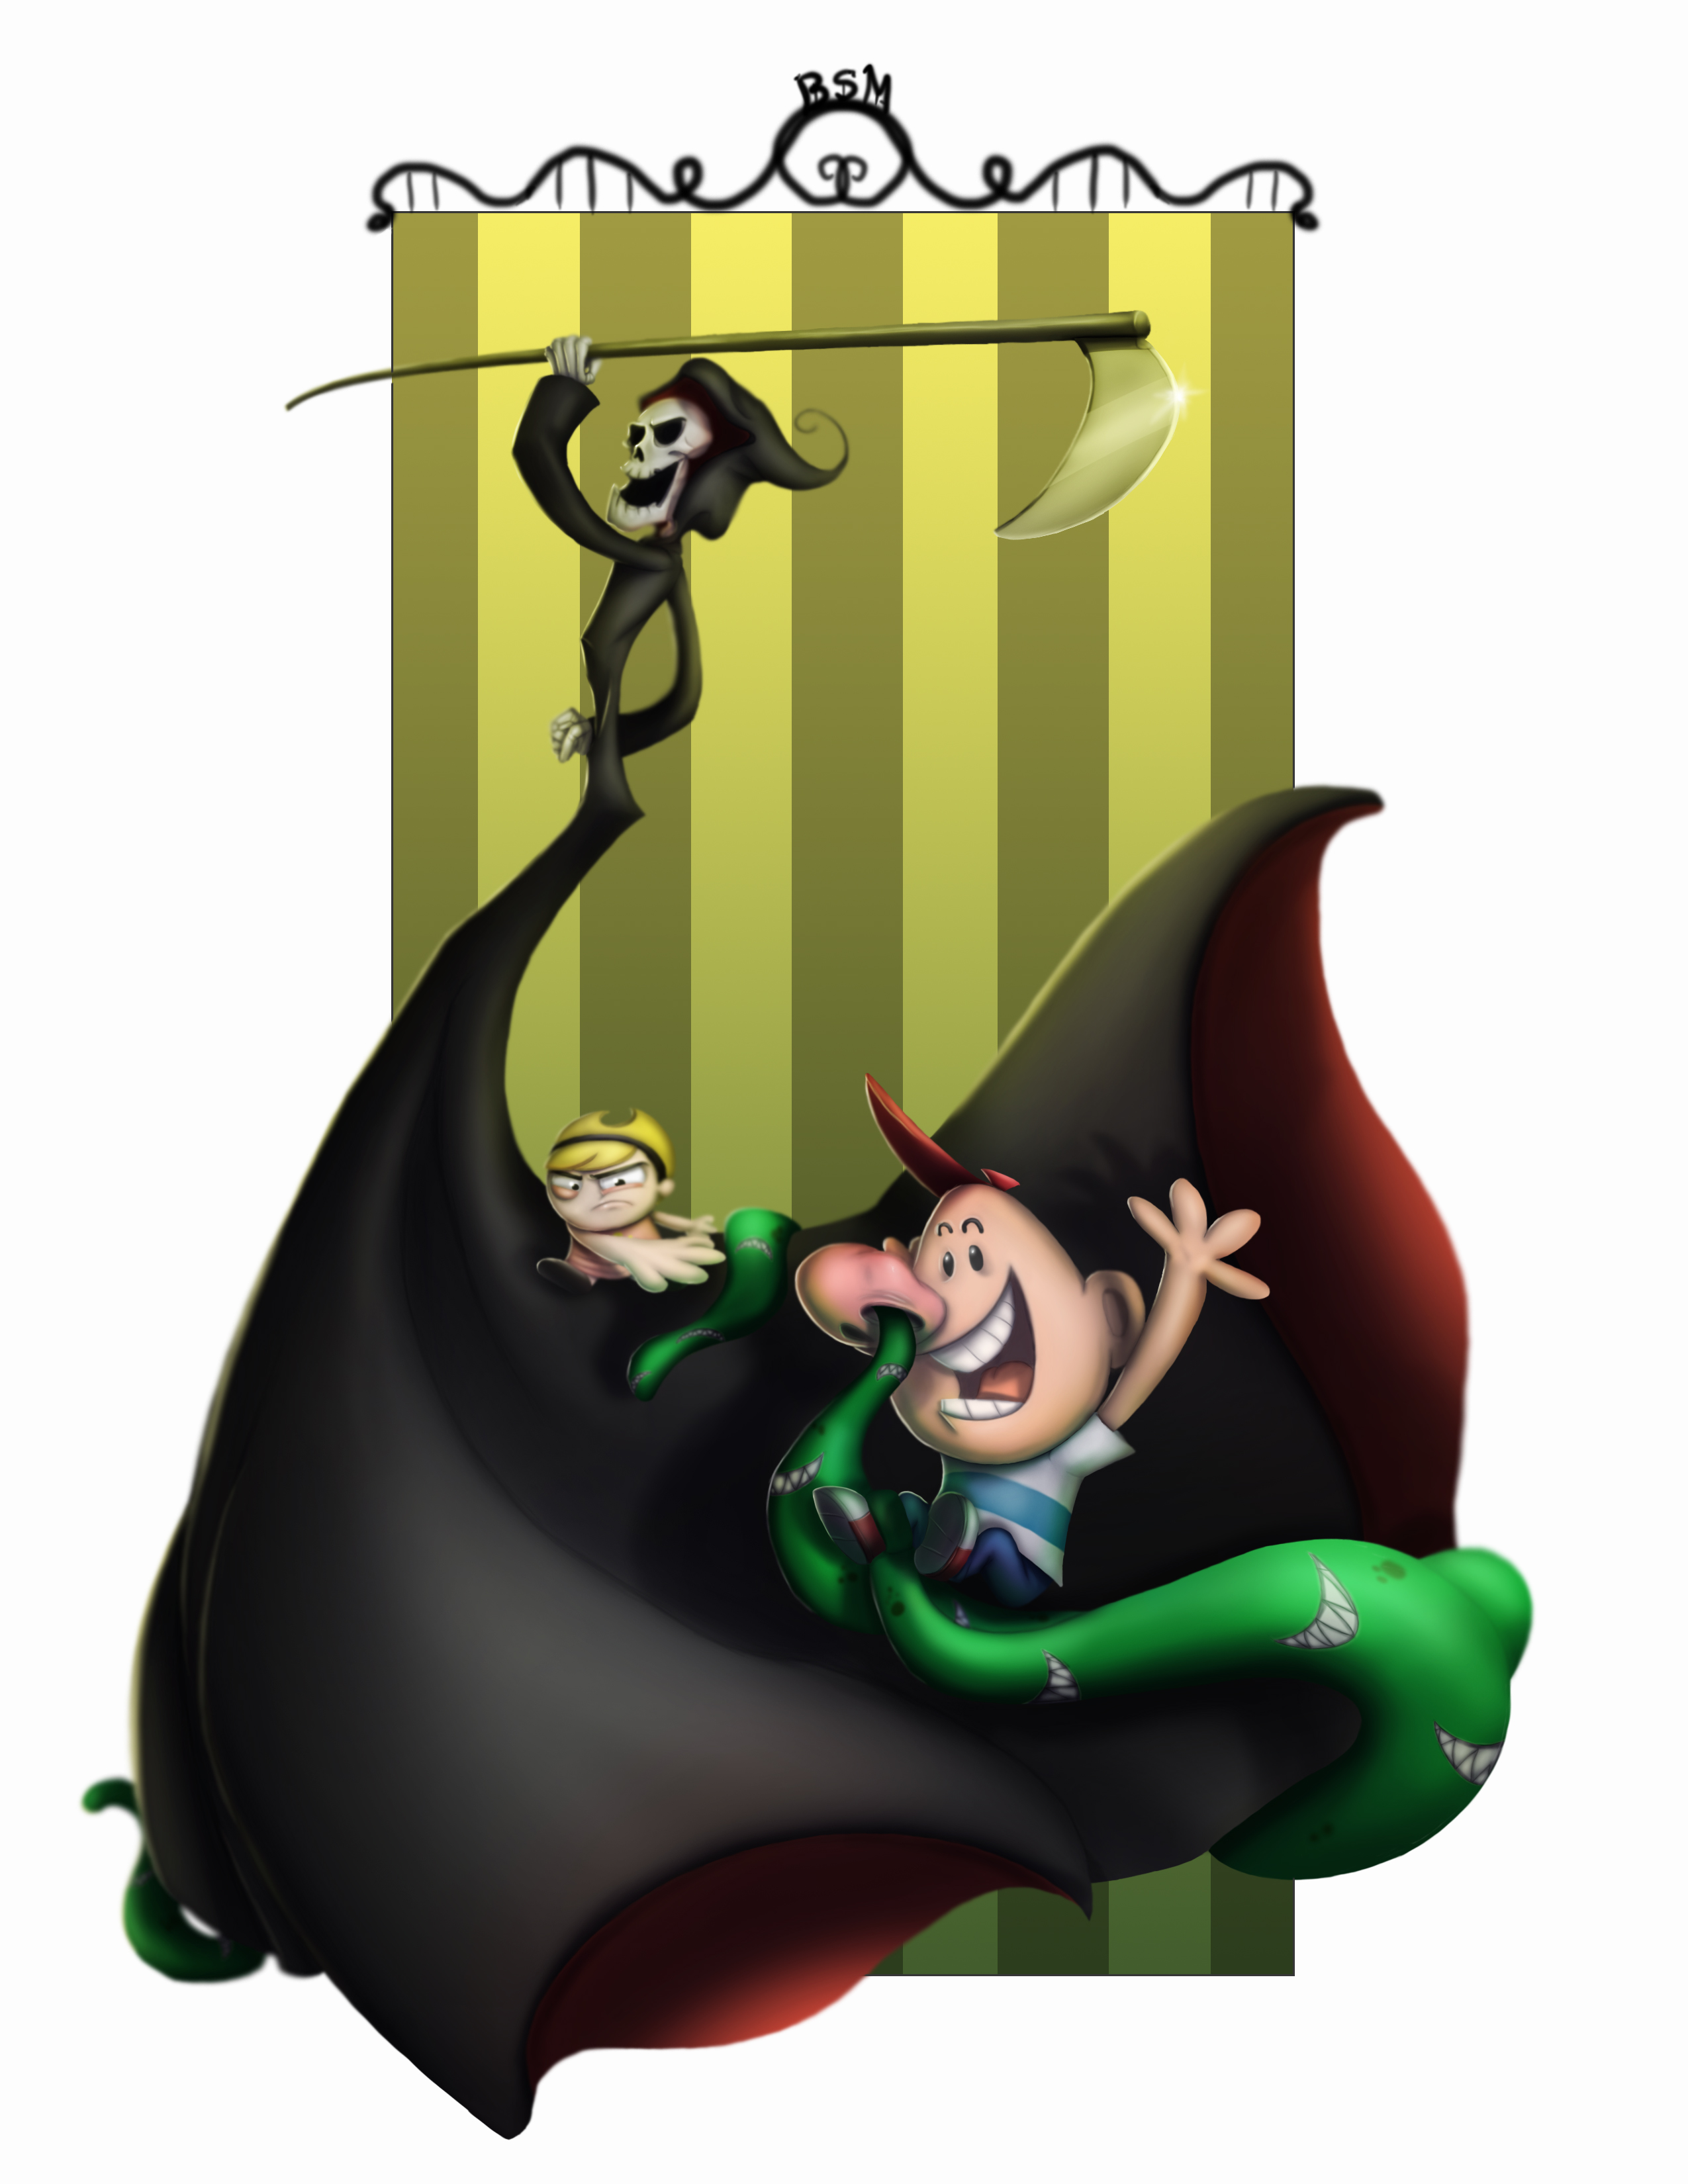 The Grim Adventures of Billy and Mandy Fan Art